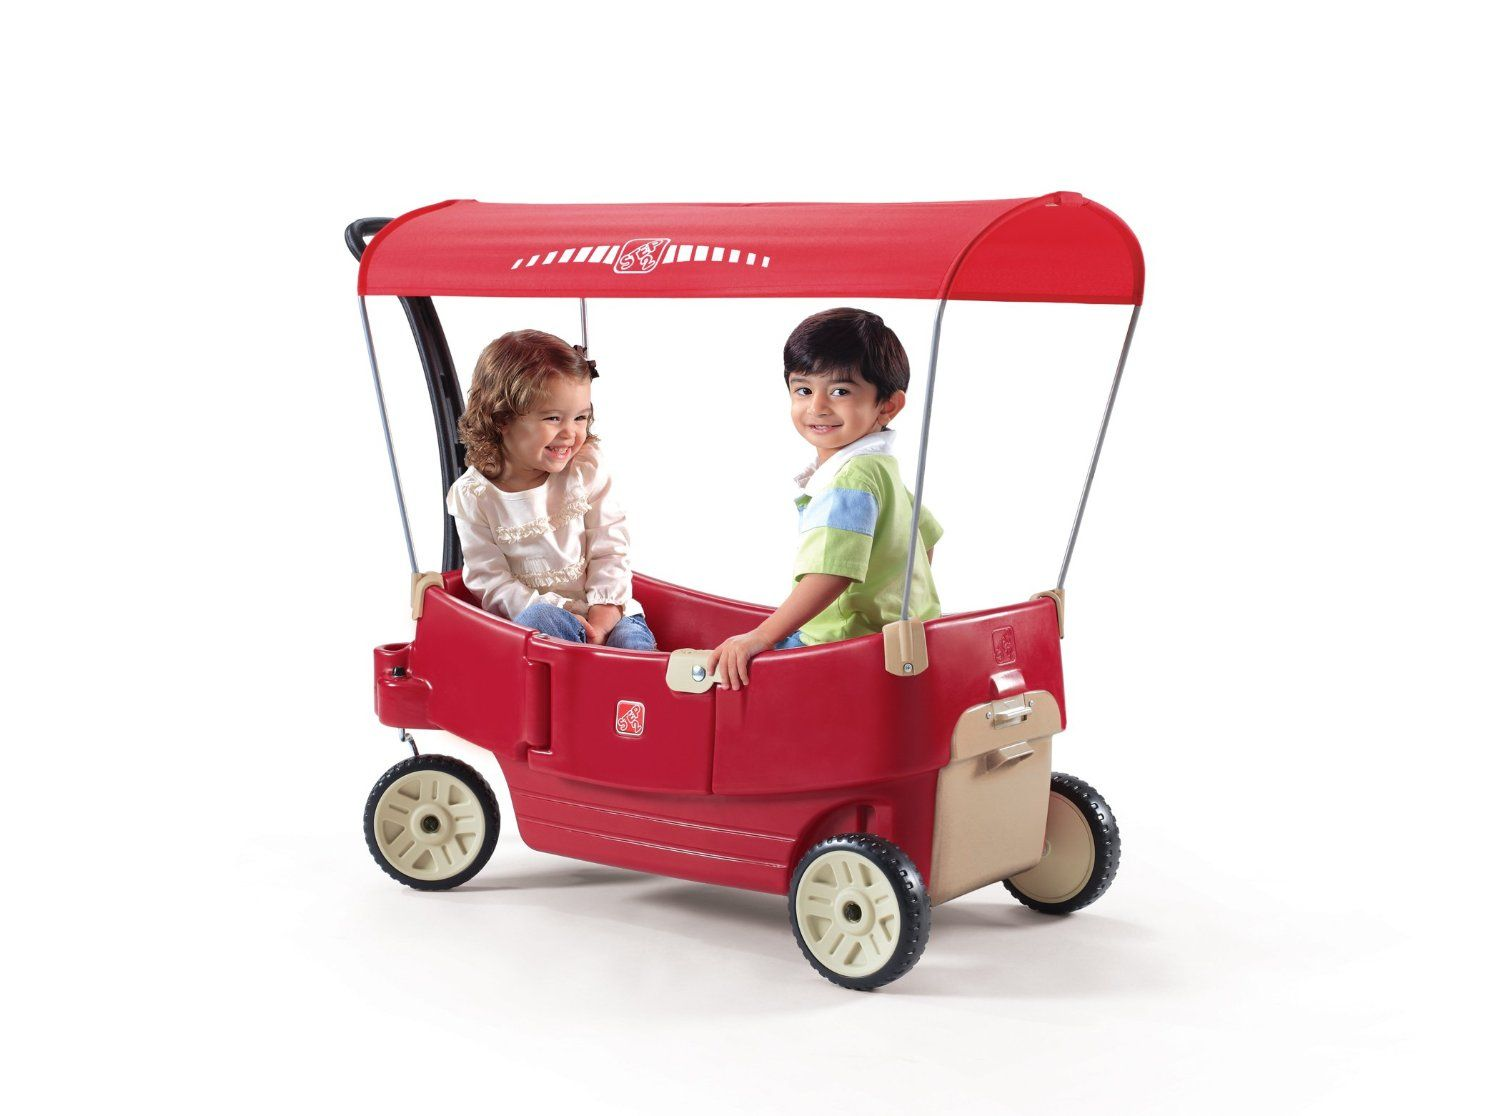 Amazon step2 all around canopy wagon red toys games amazon step2 all around canopy wagon red toys games negle Gallery